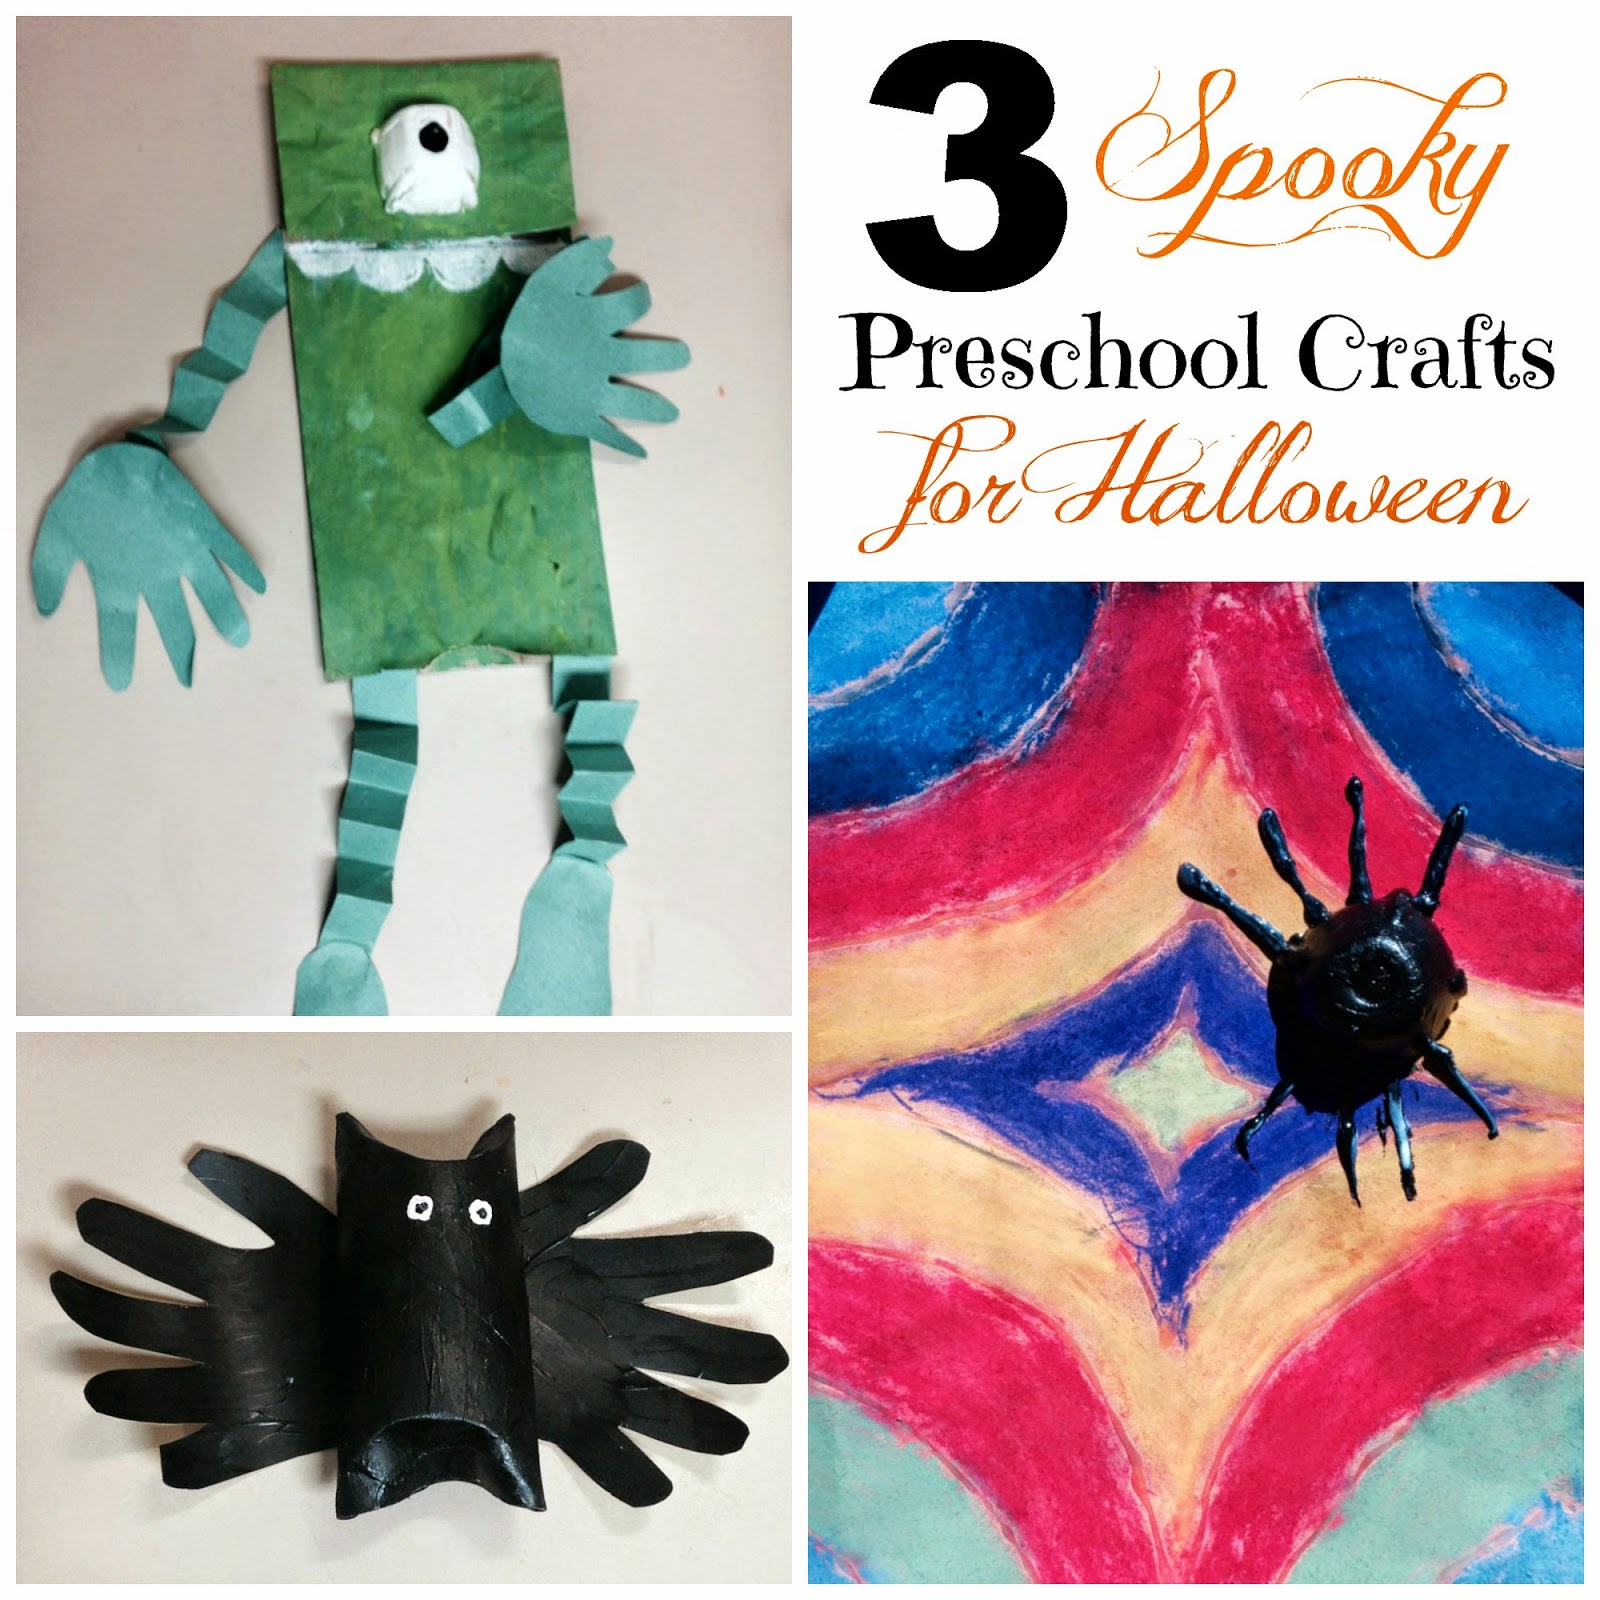 3 Spooky Preschool Crafts For Halloween Outnumbered 3 To 1